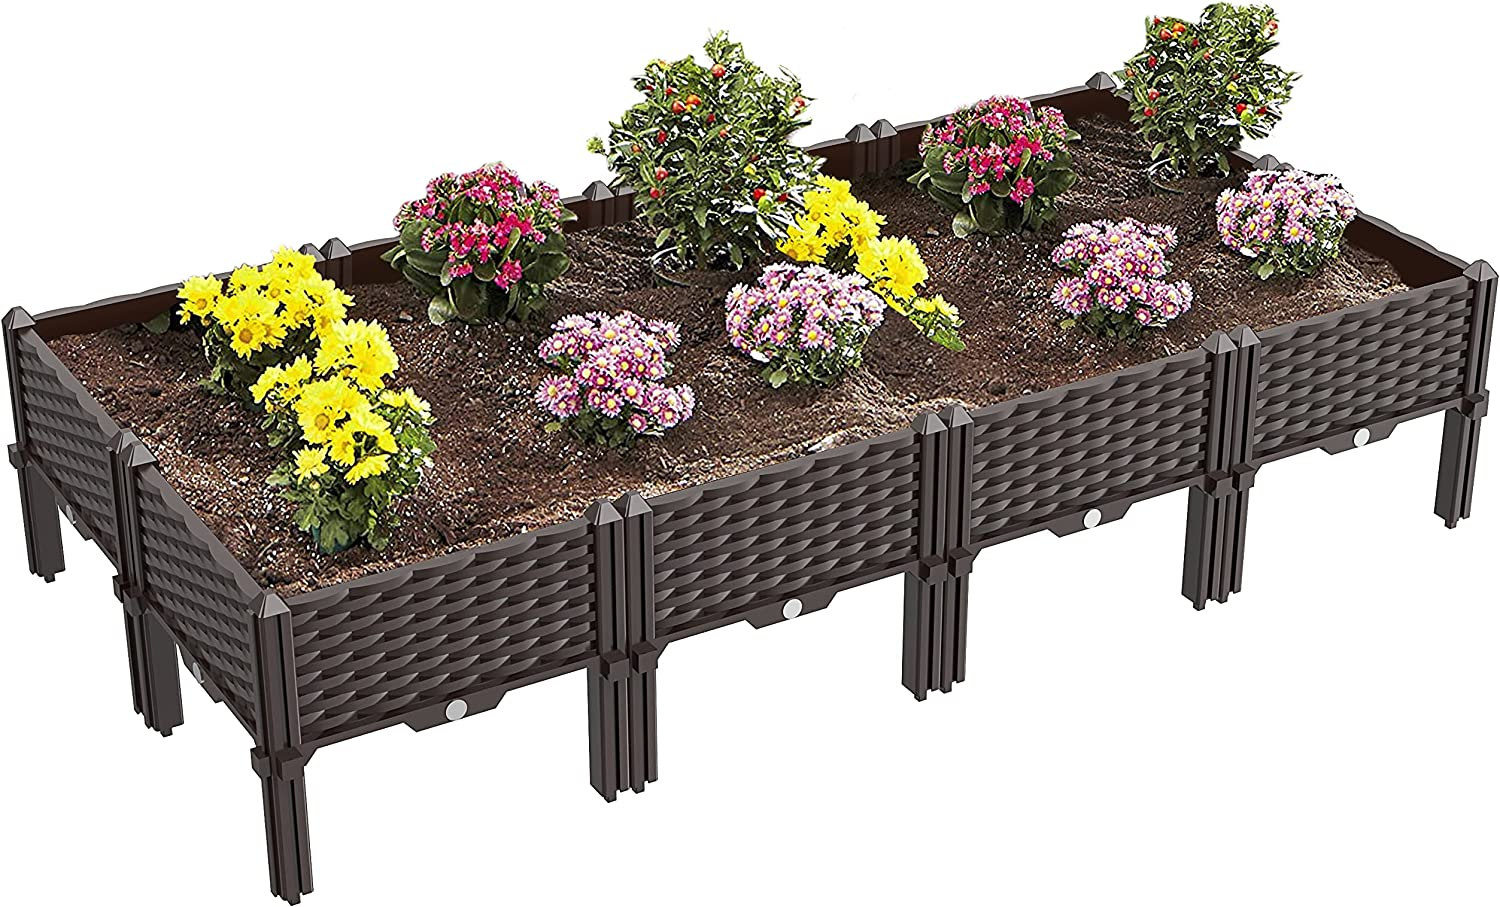 Set of 8 Raised Garden Bed Kits,Self-Watering Plastic Planter Box Outdoor for Indoor Outdoor Vegetables, Fruits, Potato, Flowers, Easy Assembly(61.4x30.7x14.16 in)